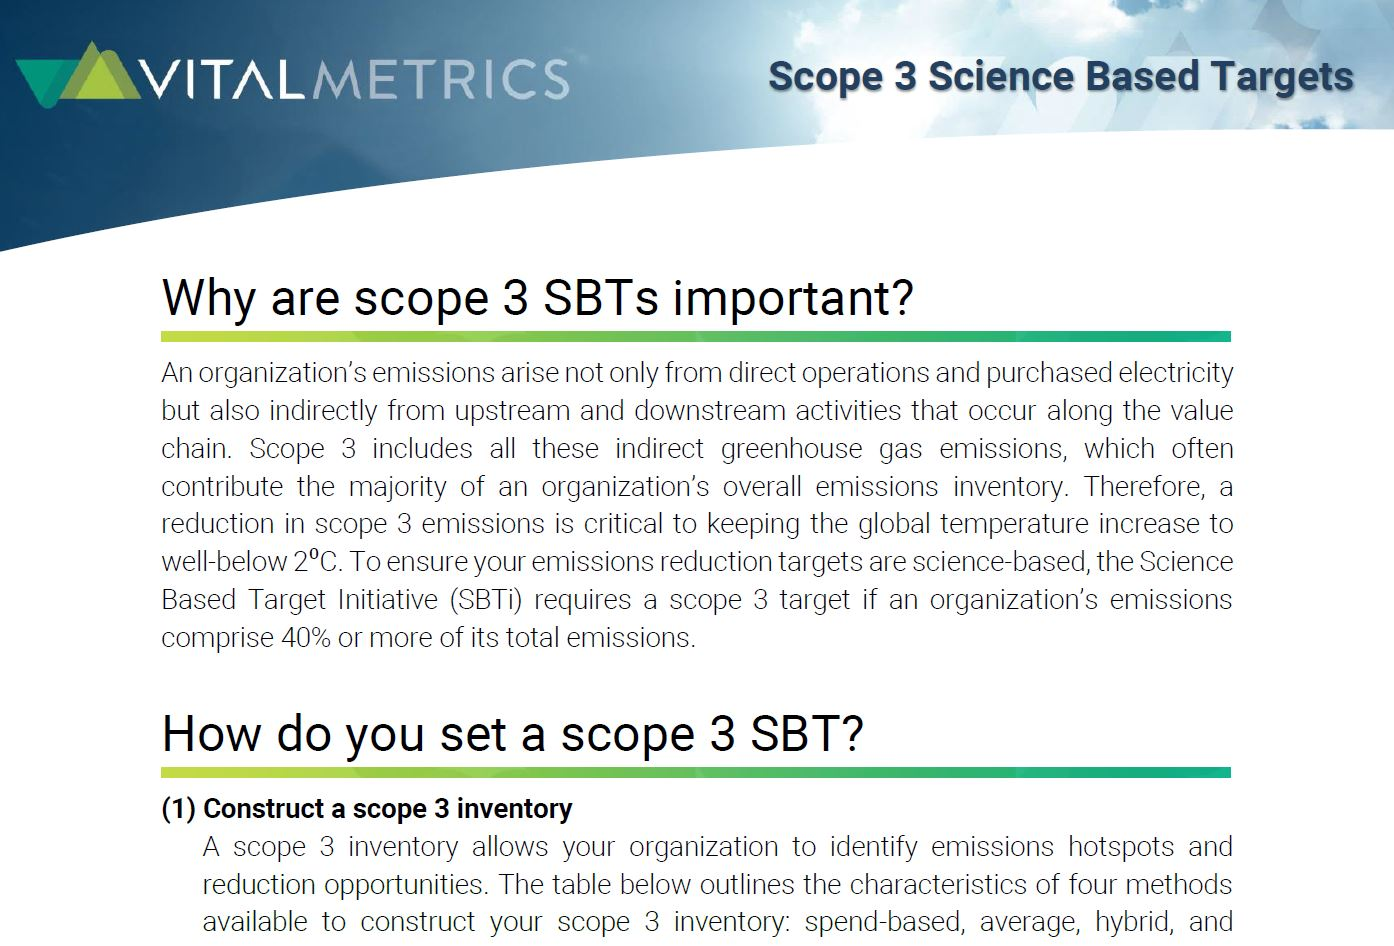 BROCHURE:  Scope 3 Science Based Targets